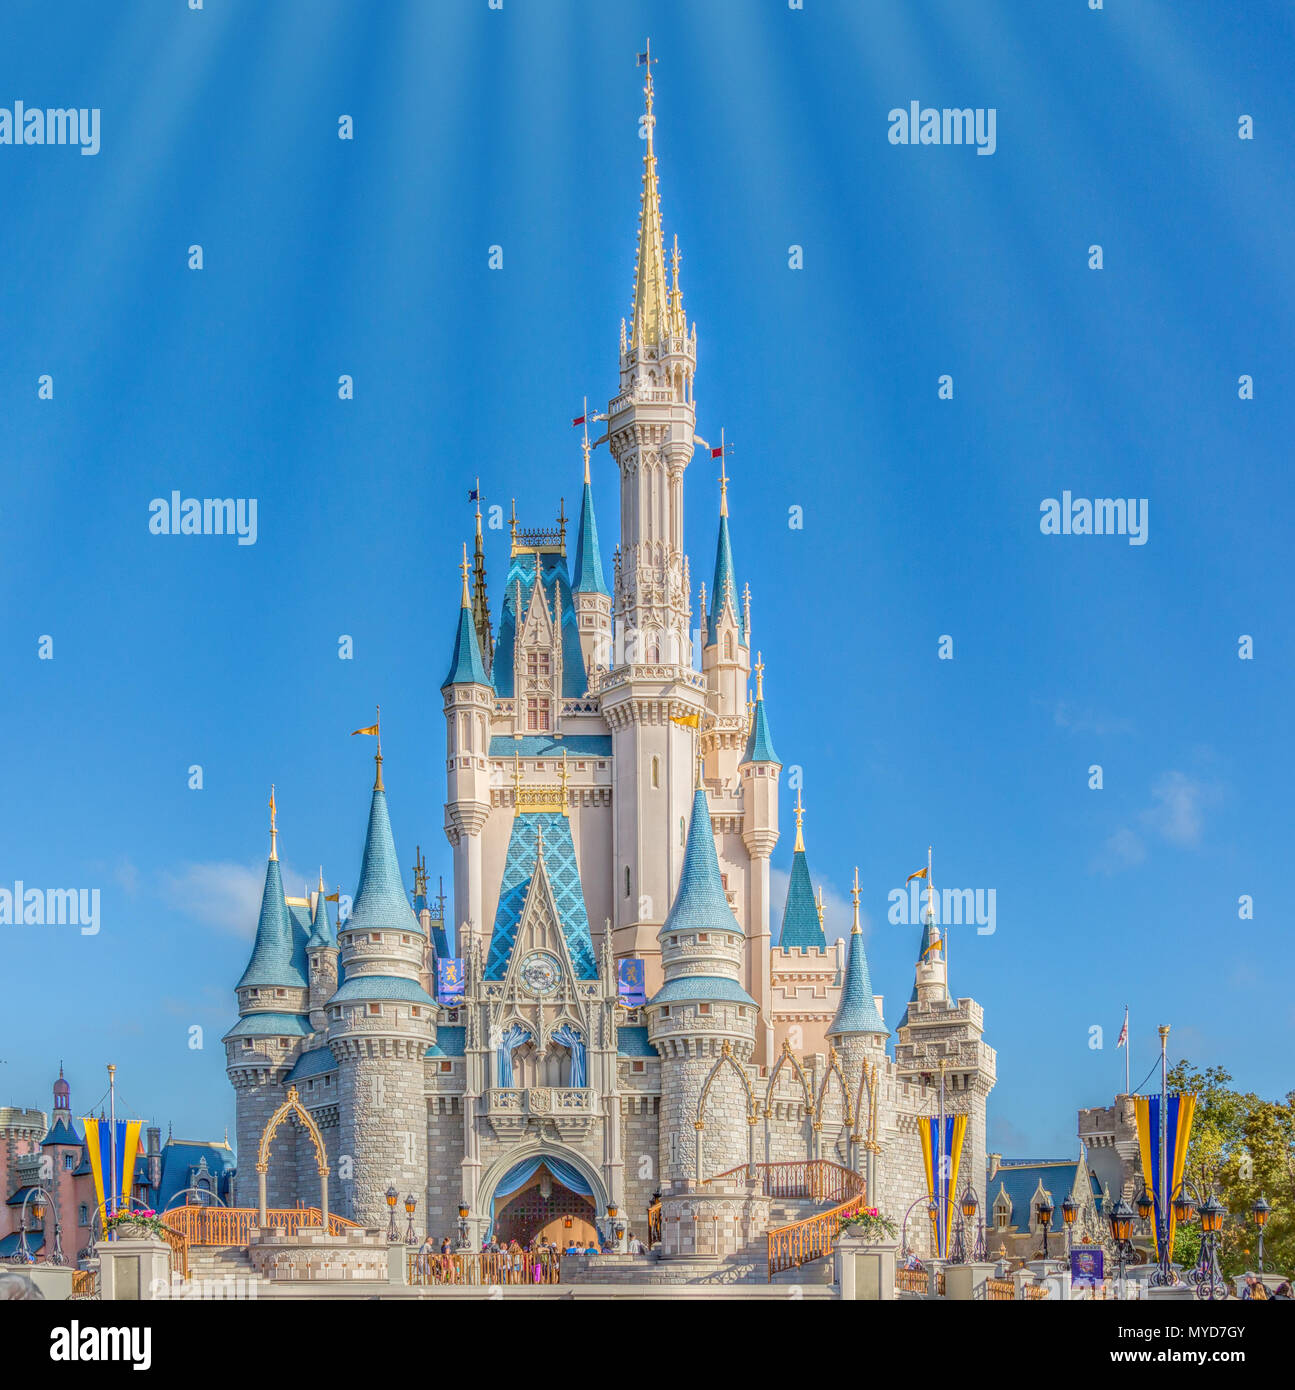 Cinderella's Castle at the end of Main Street in Fantasyland, Magic Kingdom in Disney World in Orlando Florida. - Stock Photo